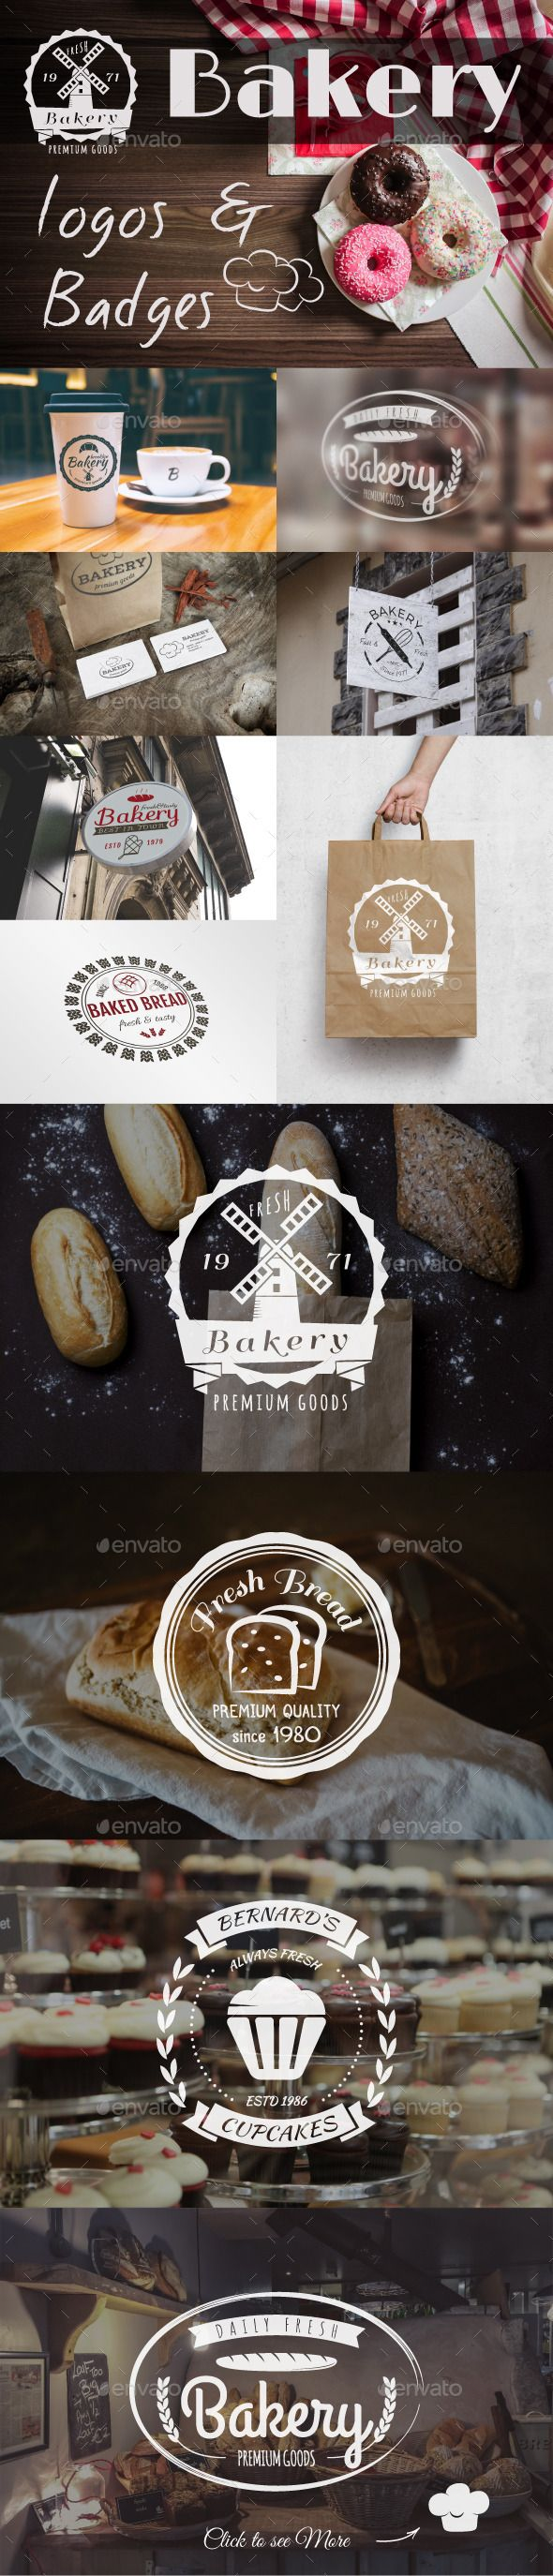 Bakery Logos & Badges #transparent #png #sweets #bake • Available here → https://graphicriver.net/item/bakery-logos-badges/12952751?ref=pxcr